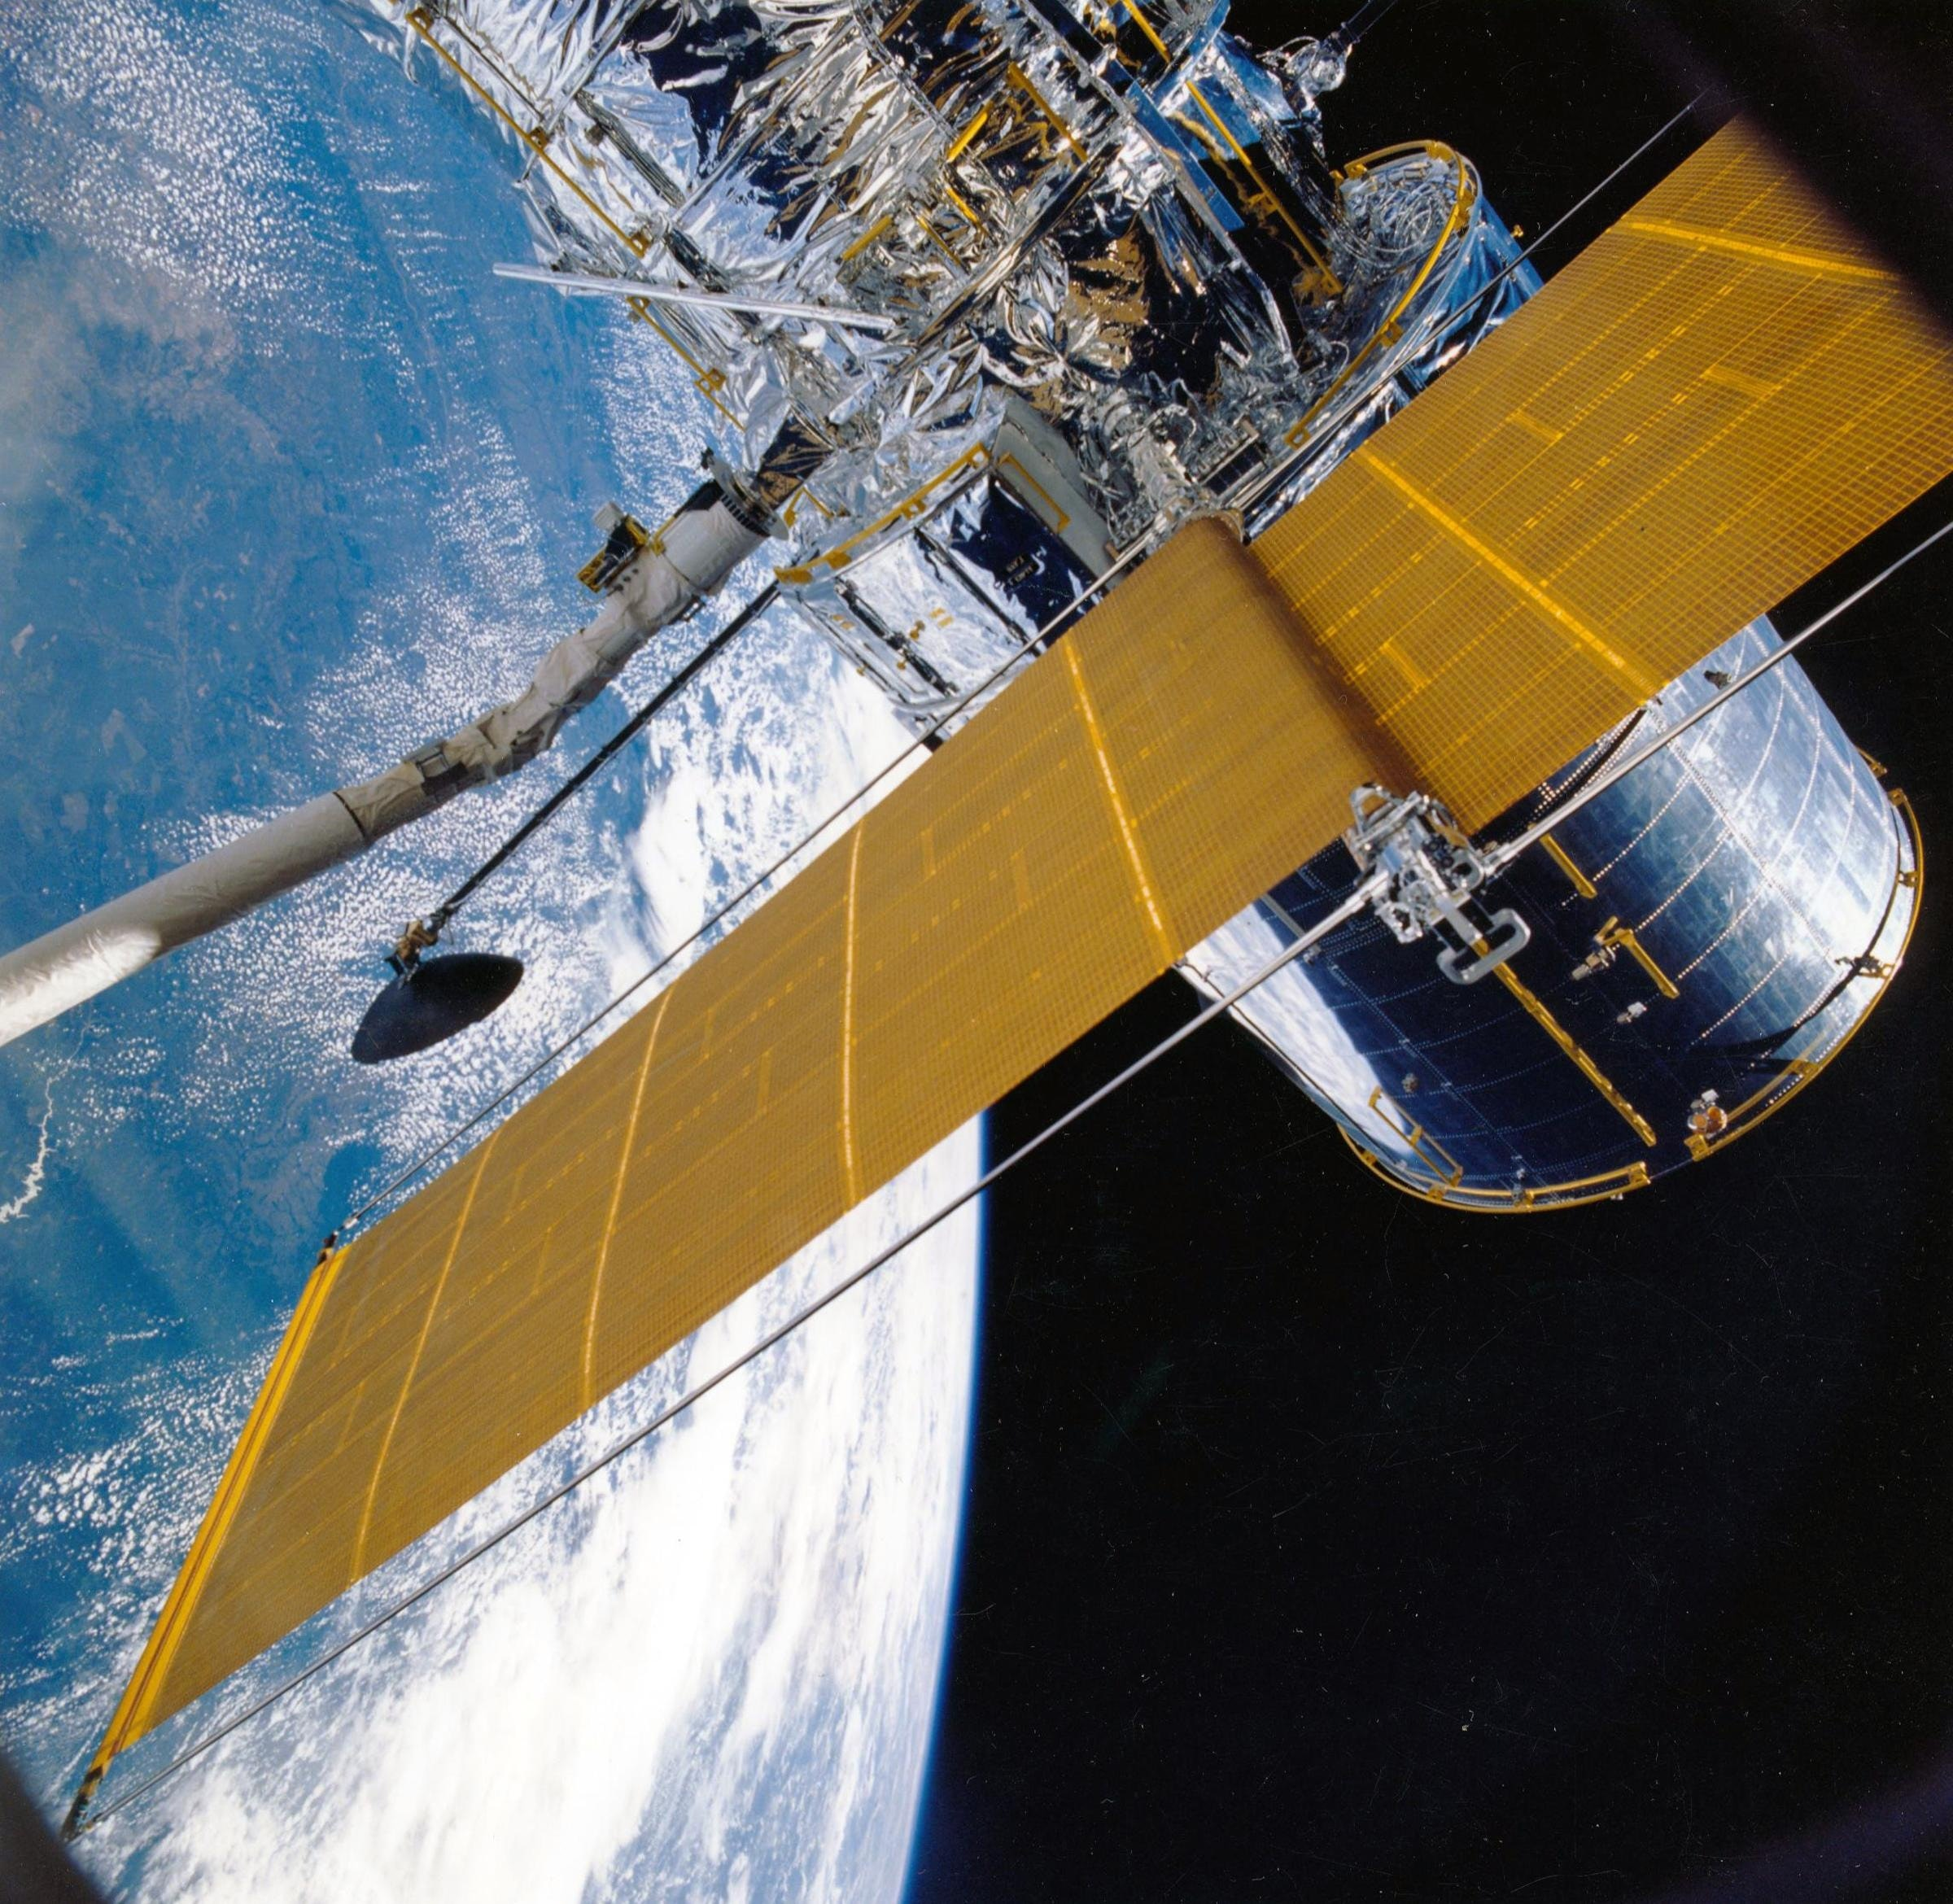 Space medicine useful to humans on earth